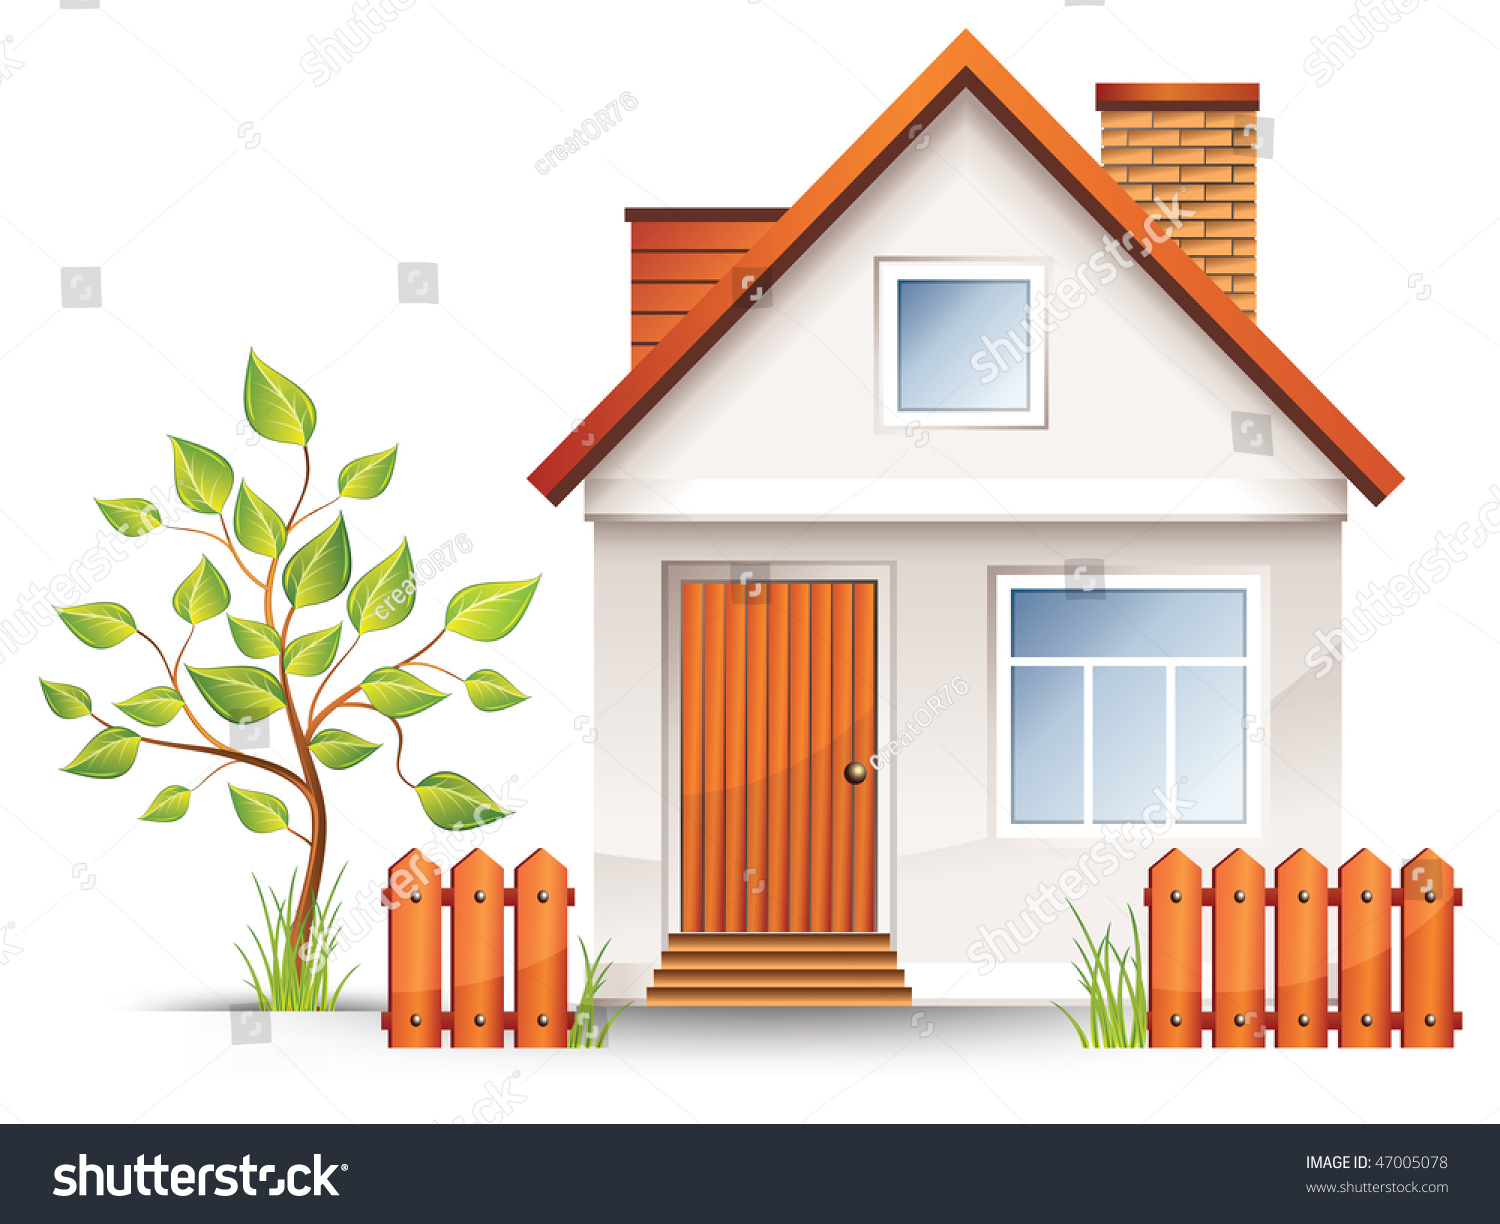 Terrific Small House Nice Green Court Yard Stock Vector 47005078 Shutterstock Largest Home Design Picture Inspirations Pitcheantrous